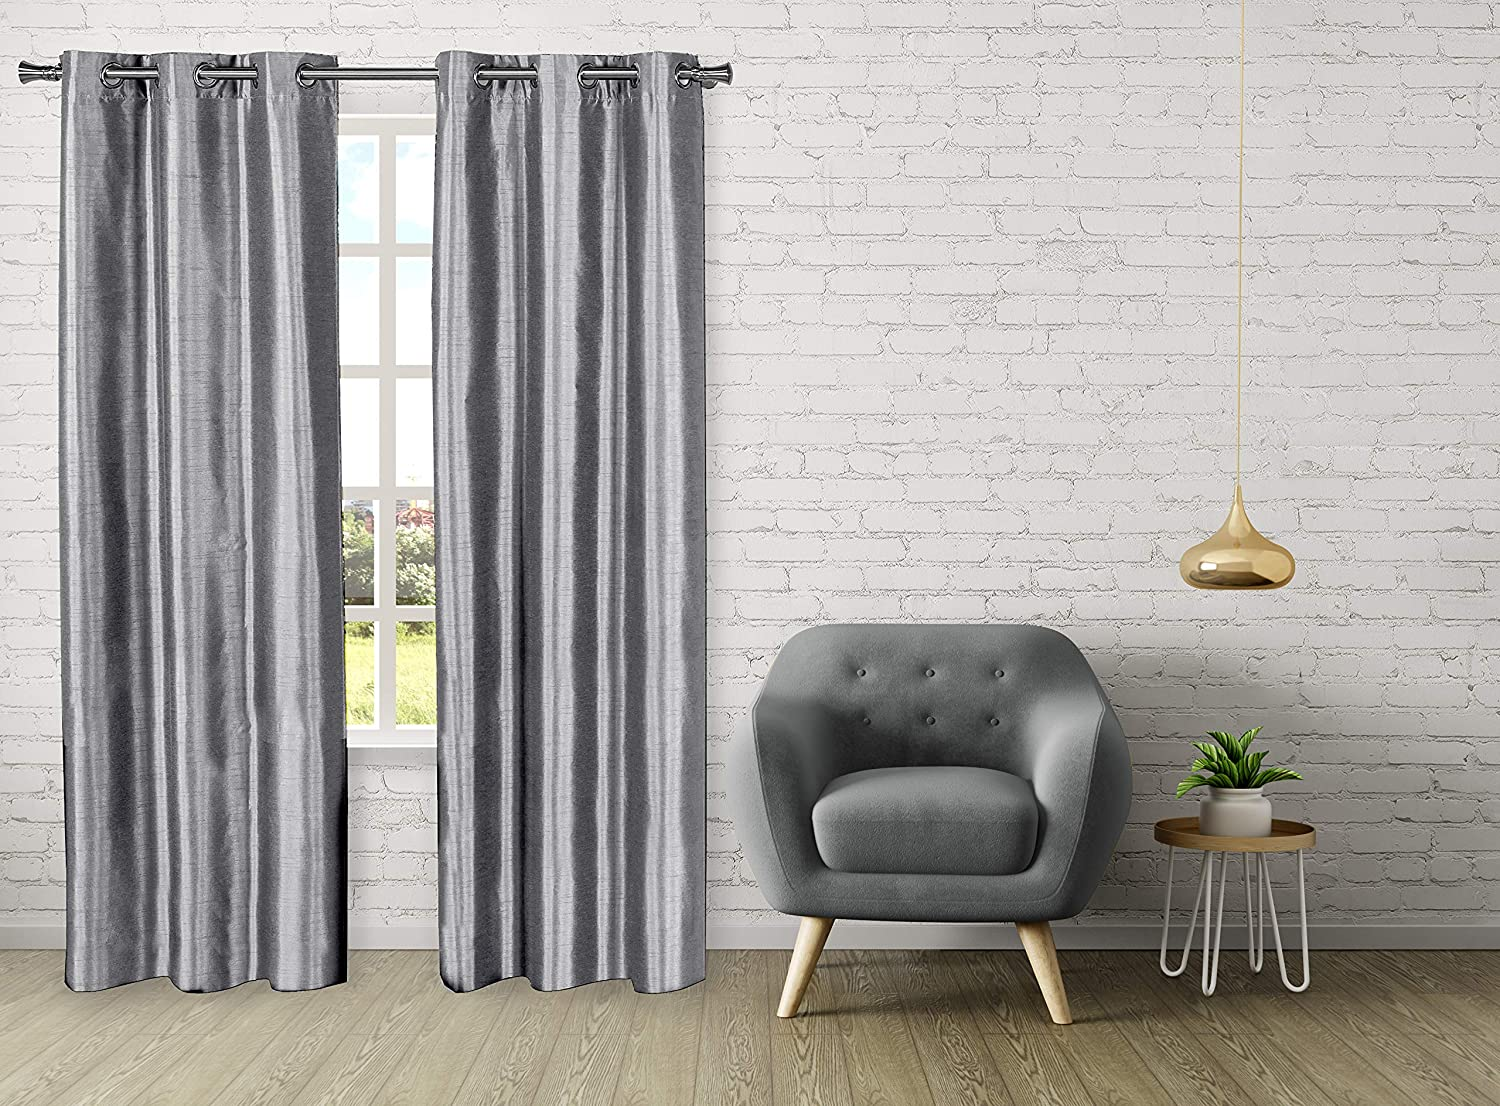 Dainty Home Town House Newport Woven Thermal Room Darkening Noise Light Reducing Faux Silk Curtain Panel Pair, 76''W x 96''L, Silver